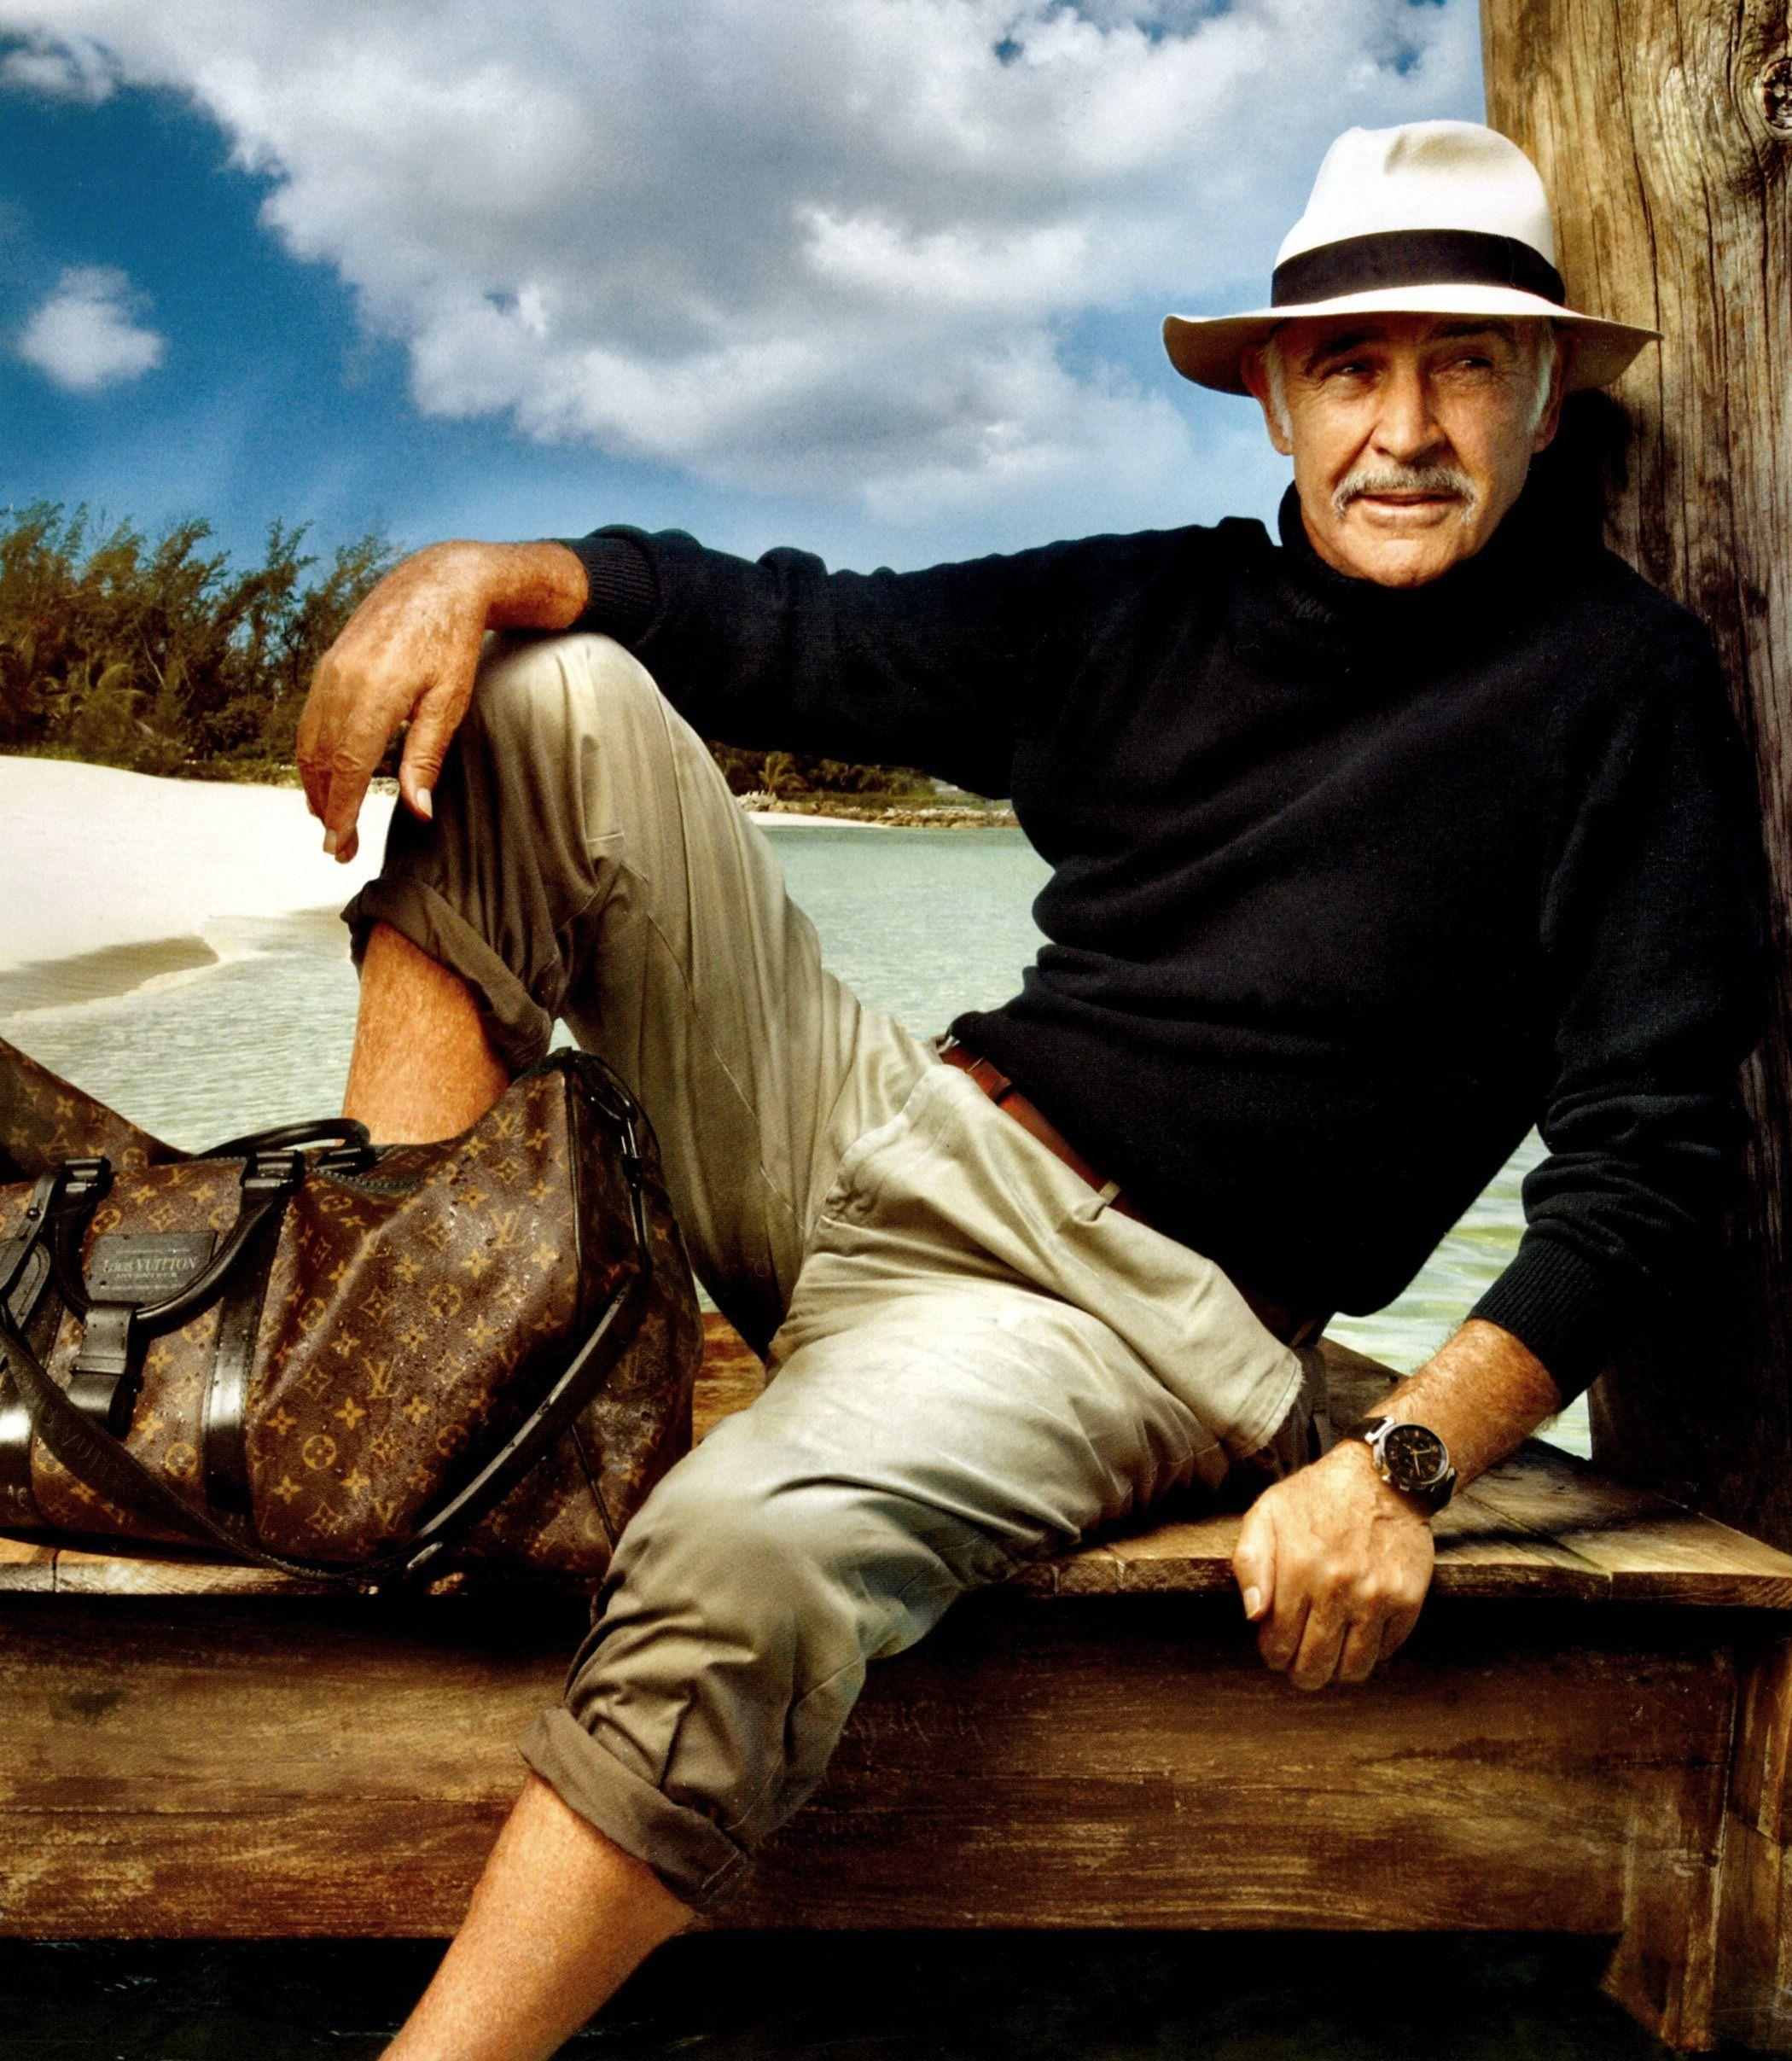 Sean Connery photo 29 of 67 pics, wallpaper - photo #136379 ...